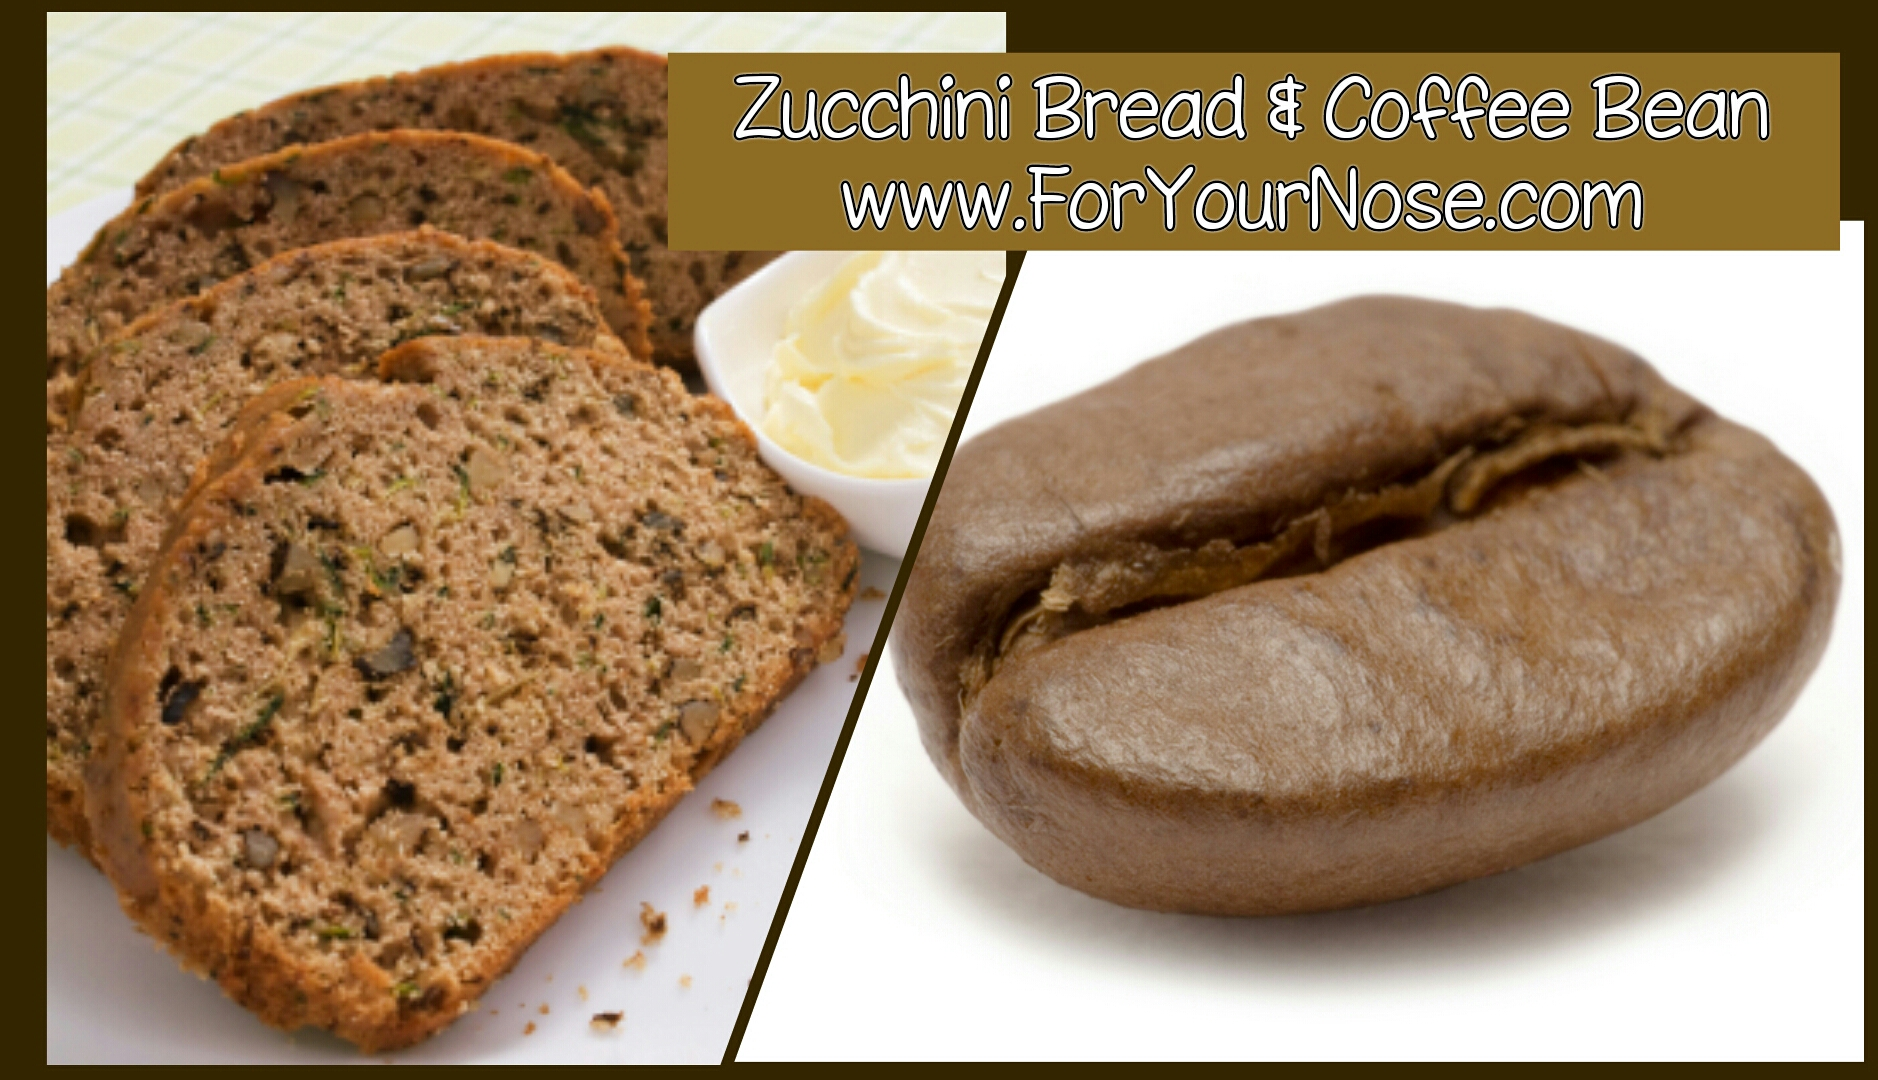 Zucchini Bread & Coffee Bean fragrance